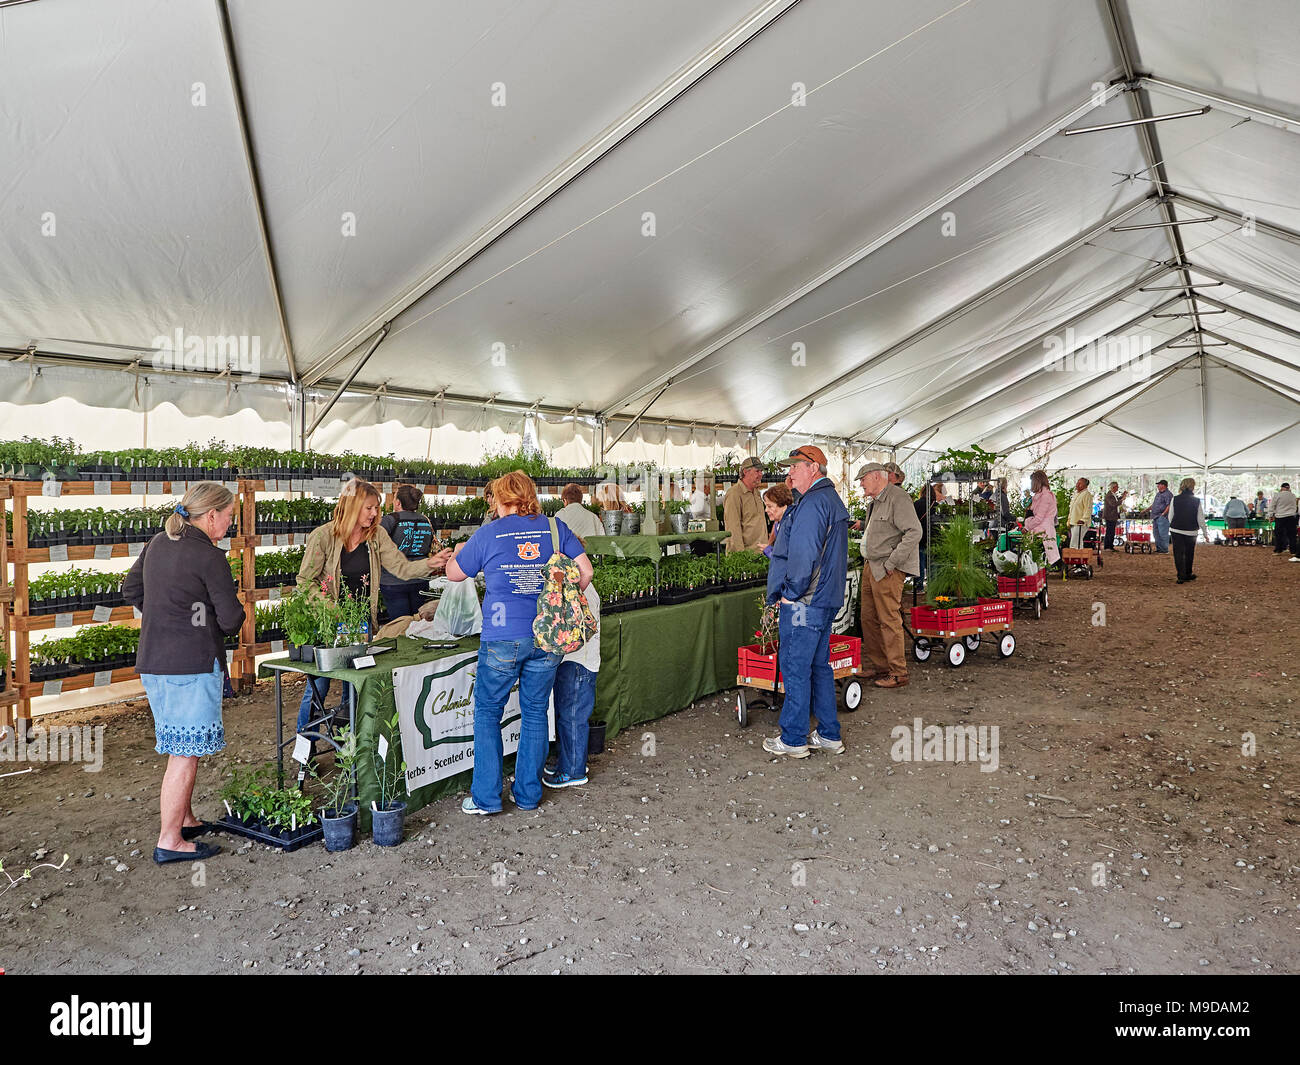 People shopping for garden plants in a large tent at the Spring plant sale in Callaway Gardens, Pine Mountain Georgia, USA. - Stock Image